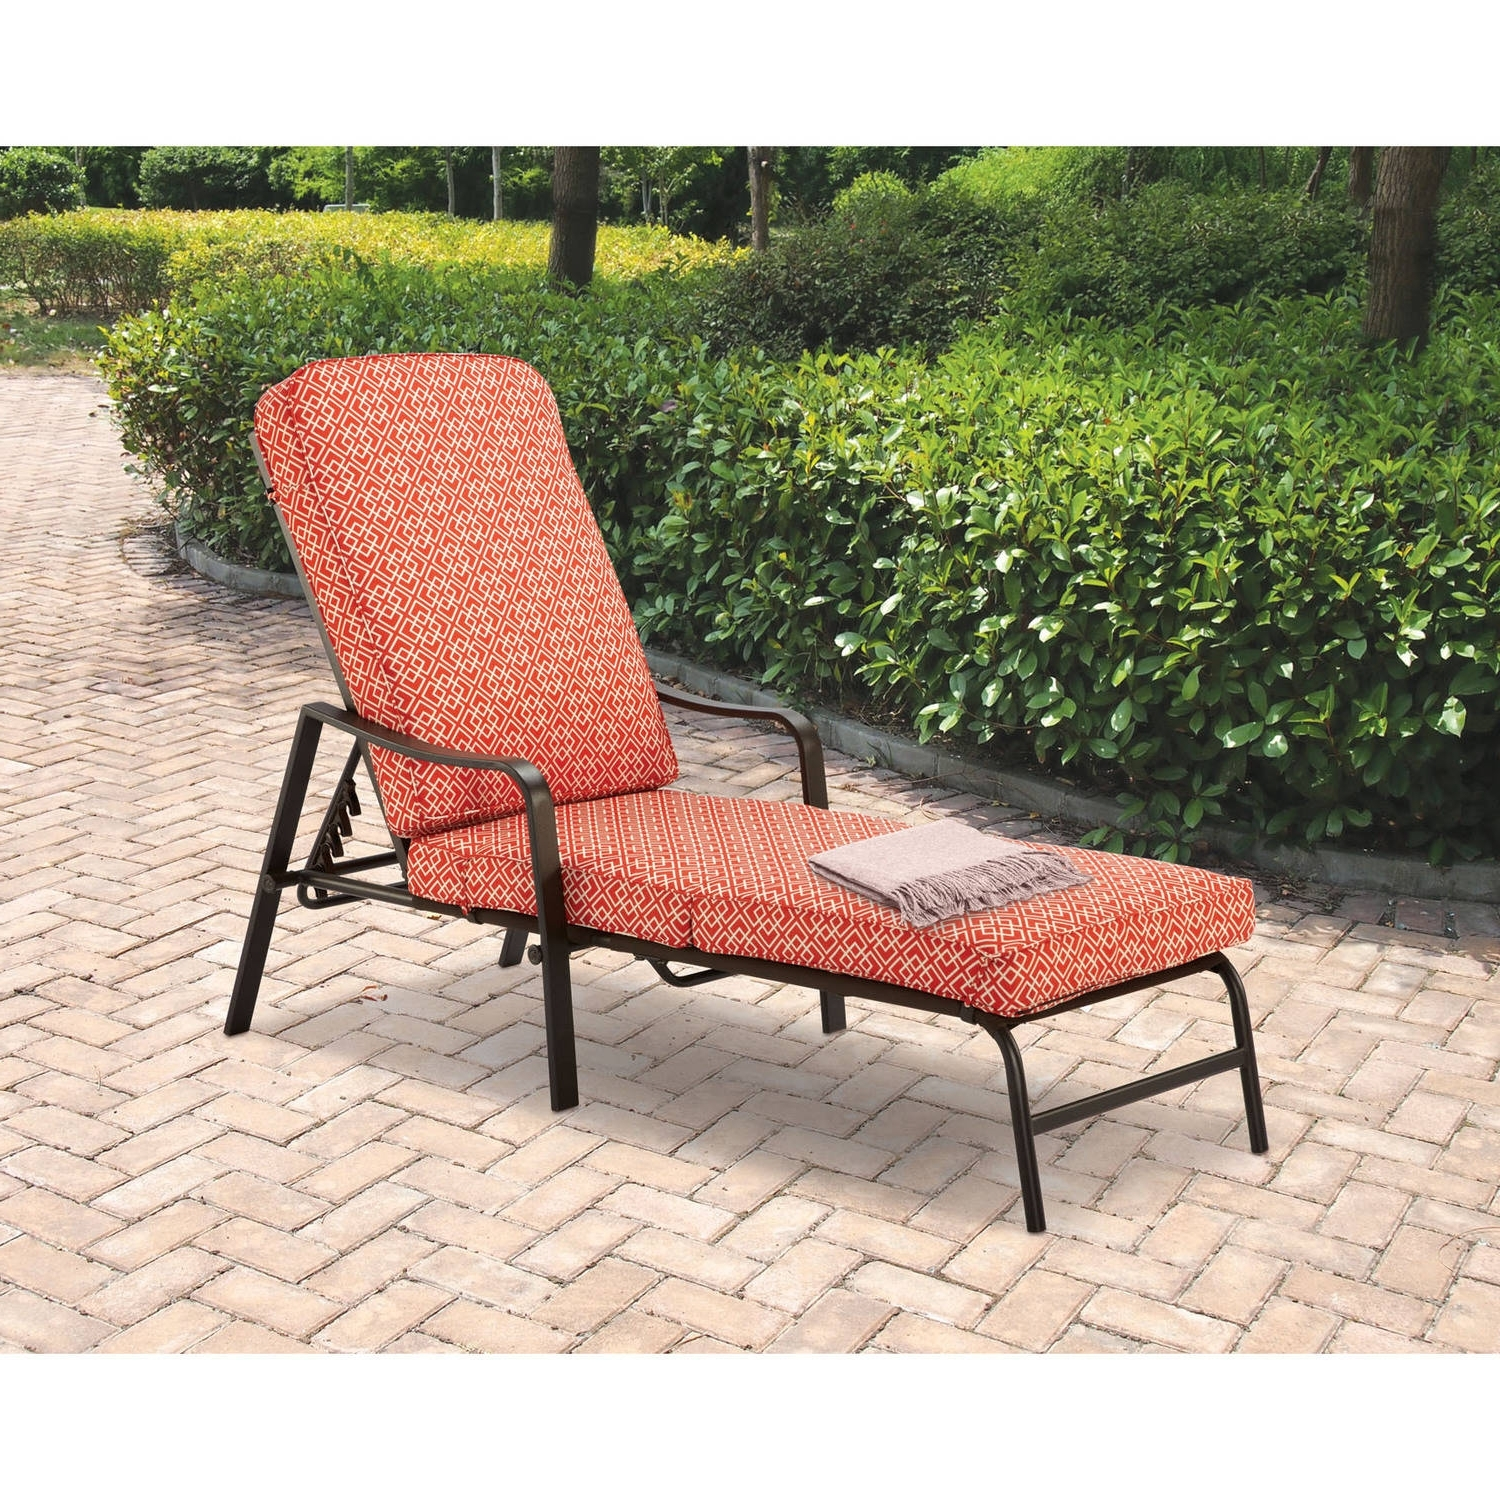 Walmart Chaise Lounge Chairs With Regard To Current Mainstays Outdoor Chaise Lounge, Orange Geo Pattern – Walmart (View 14 of 15)